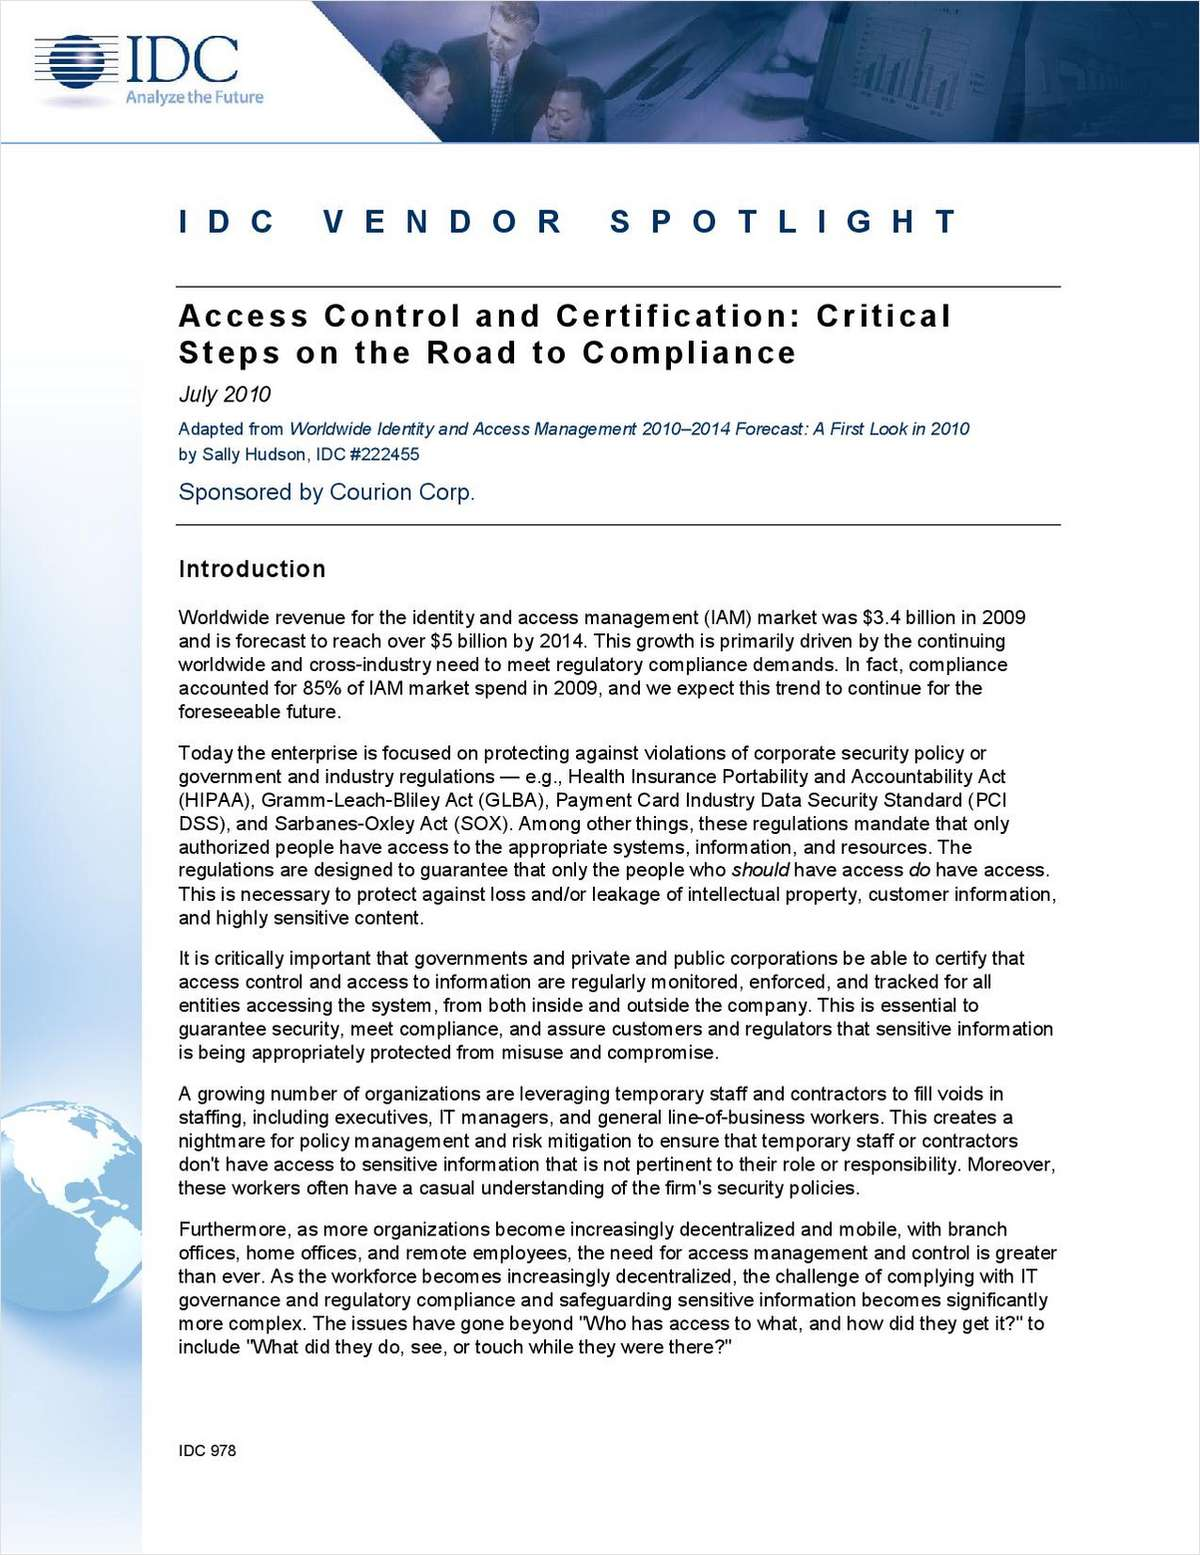 IDC Spotlight: Access Control and Certification